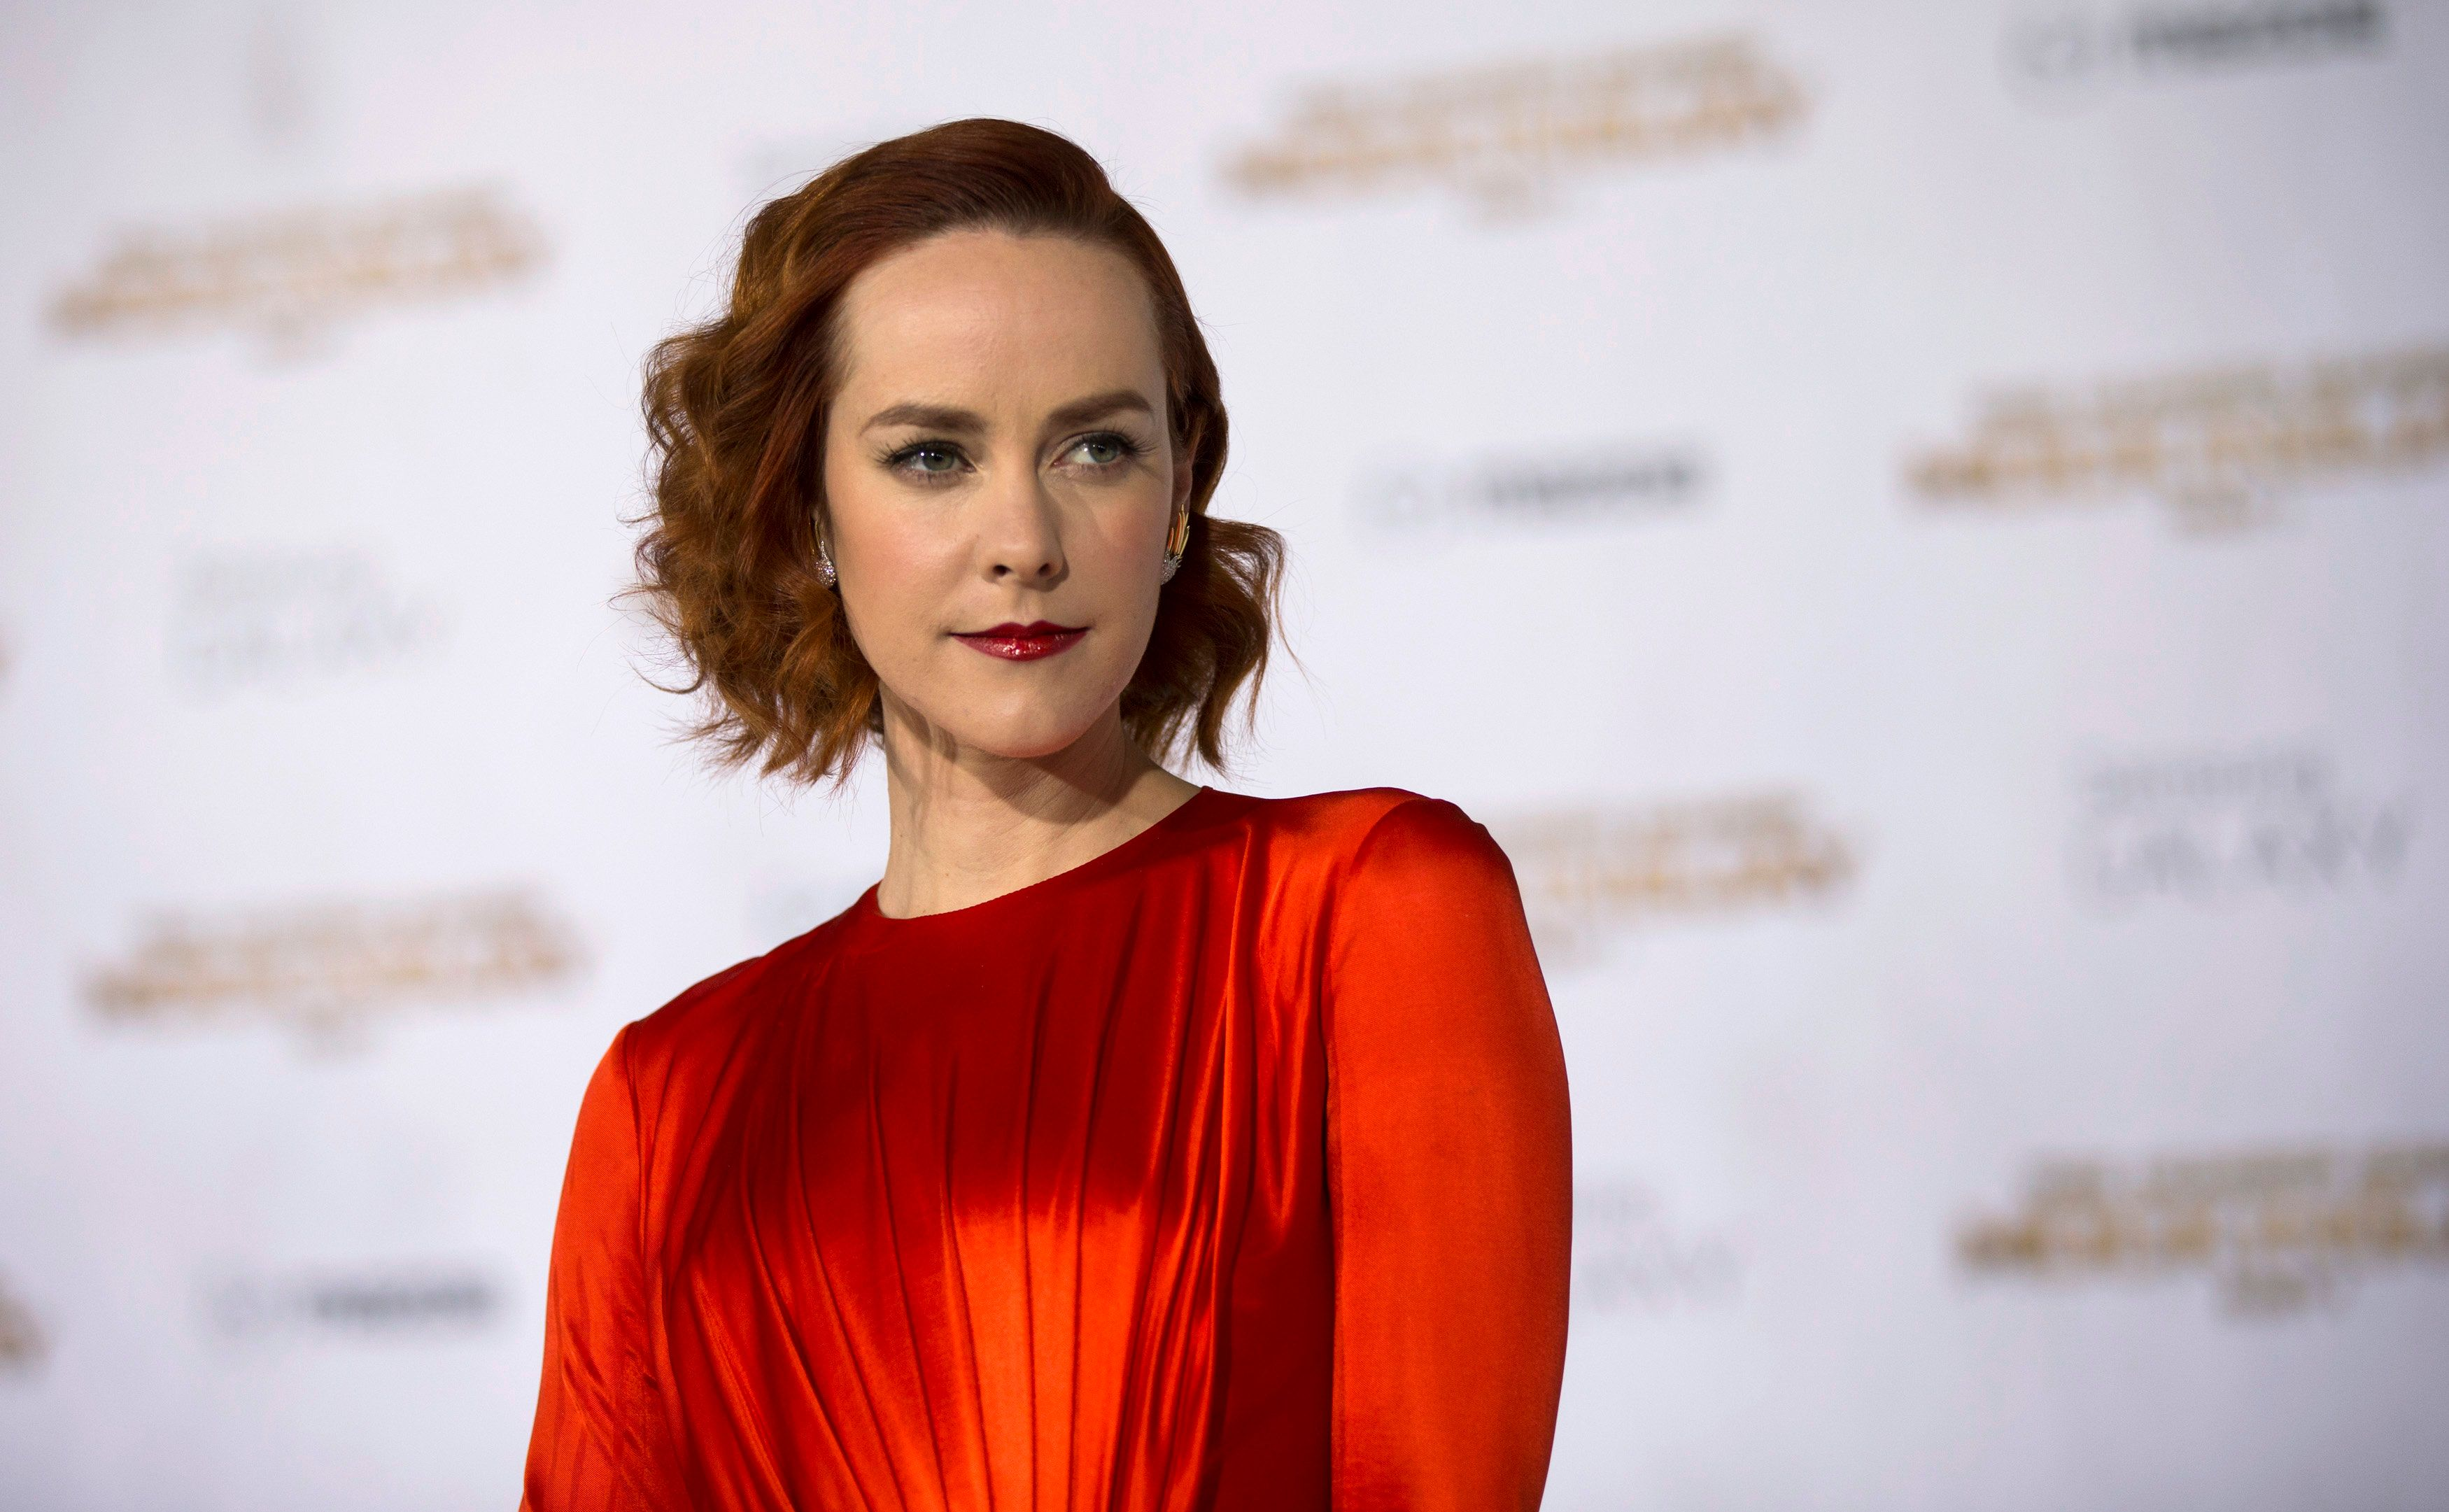 """Cast member Jena Malone poses at the premiere of """"The Hunger Games: Mockingjay - Part 1"""" in Los Angeles, California November 17, 2014. The movie opens in the U.S. on November 21. REUTERS/Mario Anzuoni  (UNITED STATES - Tags: ENTERTAINMENT)"""